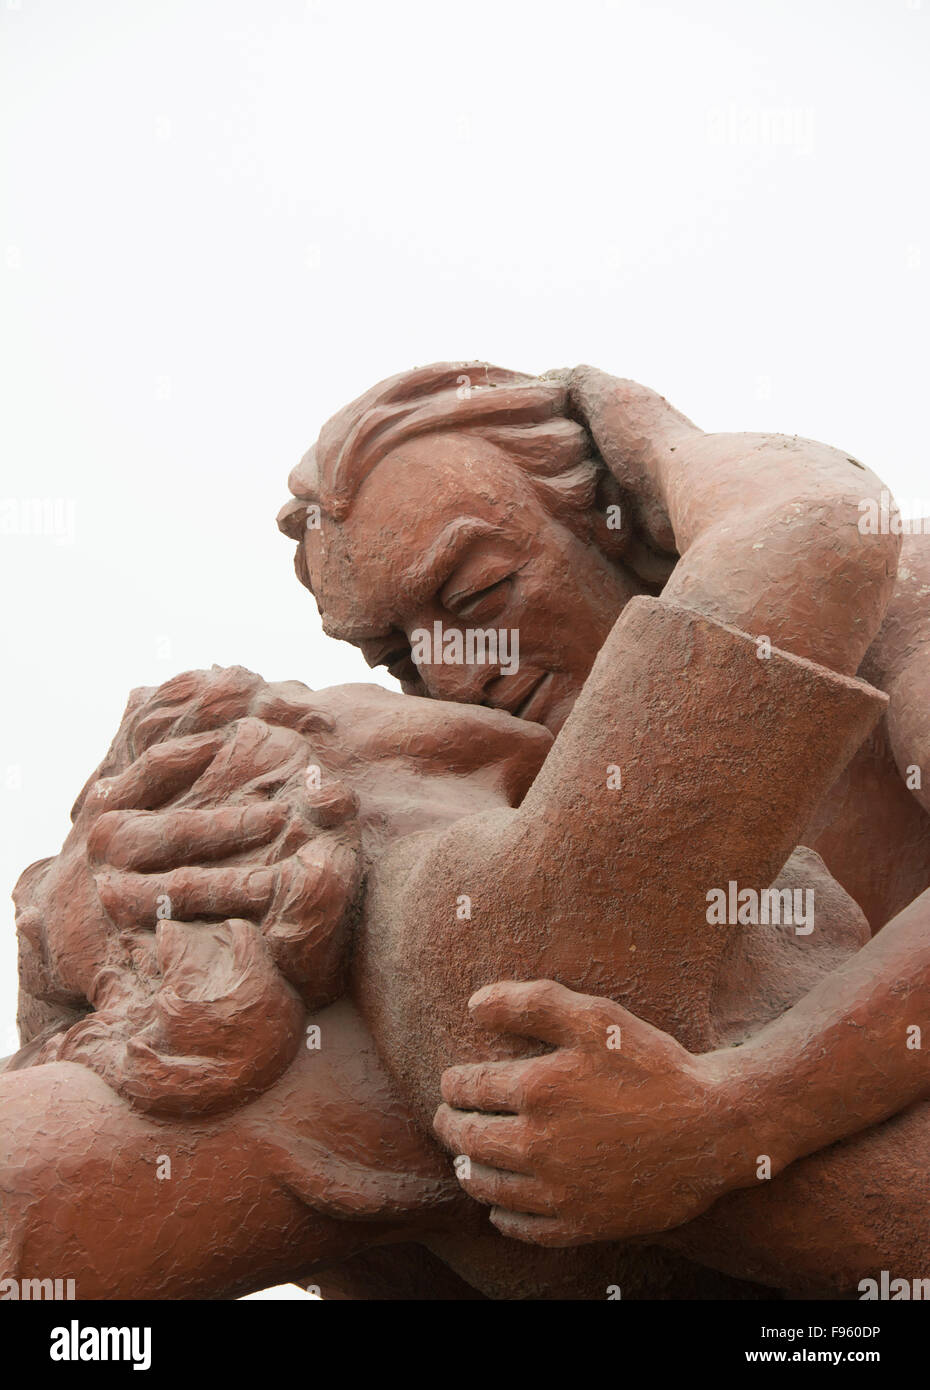 The Kiss, sculpture by Víctor Delfín in Miraflores suburb, Lima, Peru - Stock Image